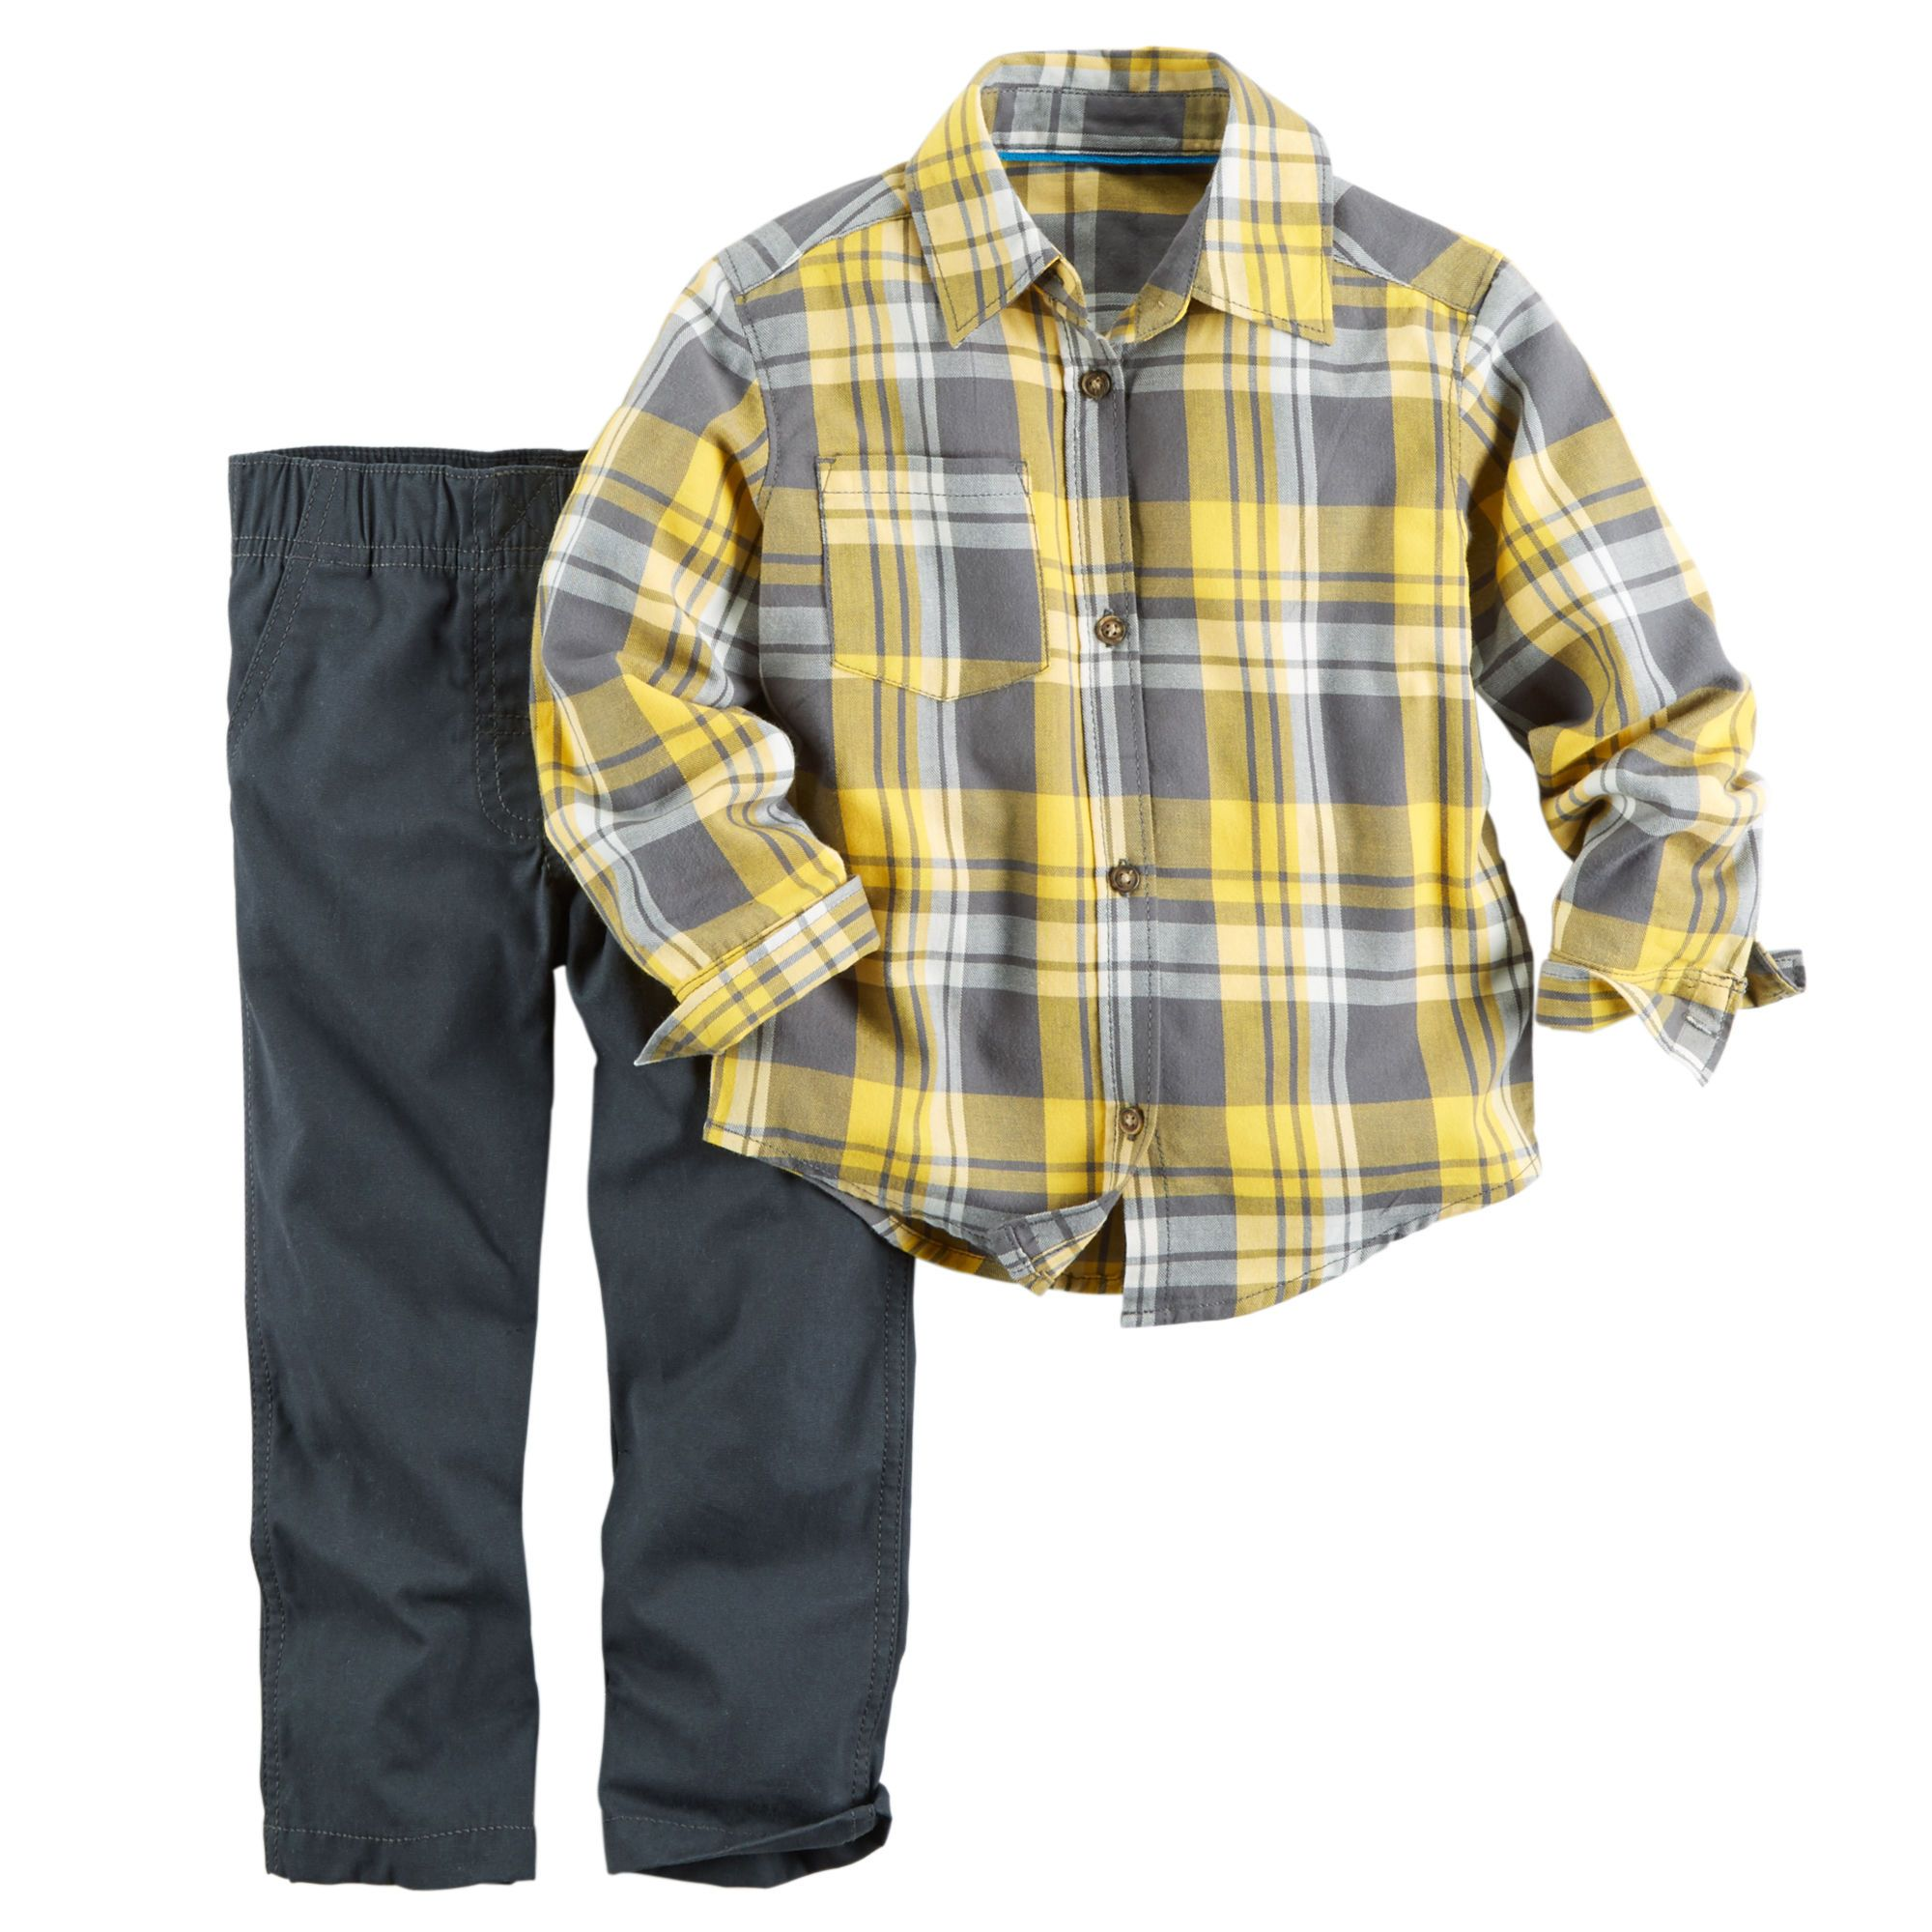 Flannel shirts at kohl's  Shopping Cart  Carterus  Portrait Clothes  Pinterest  Shirts